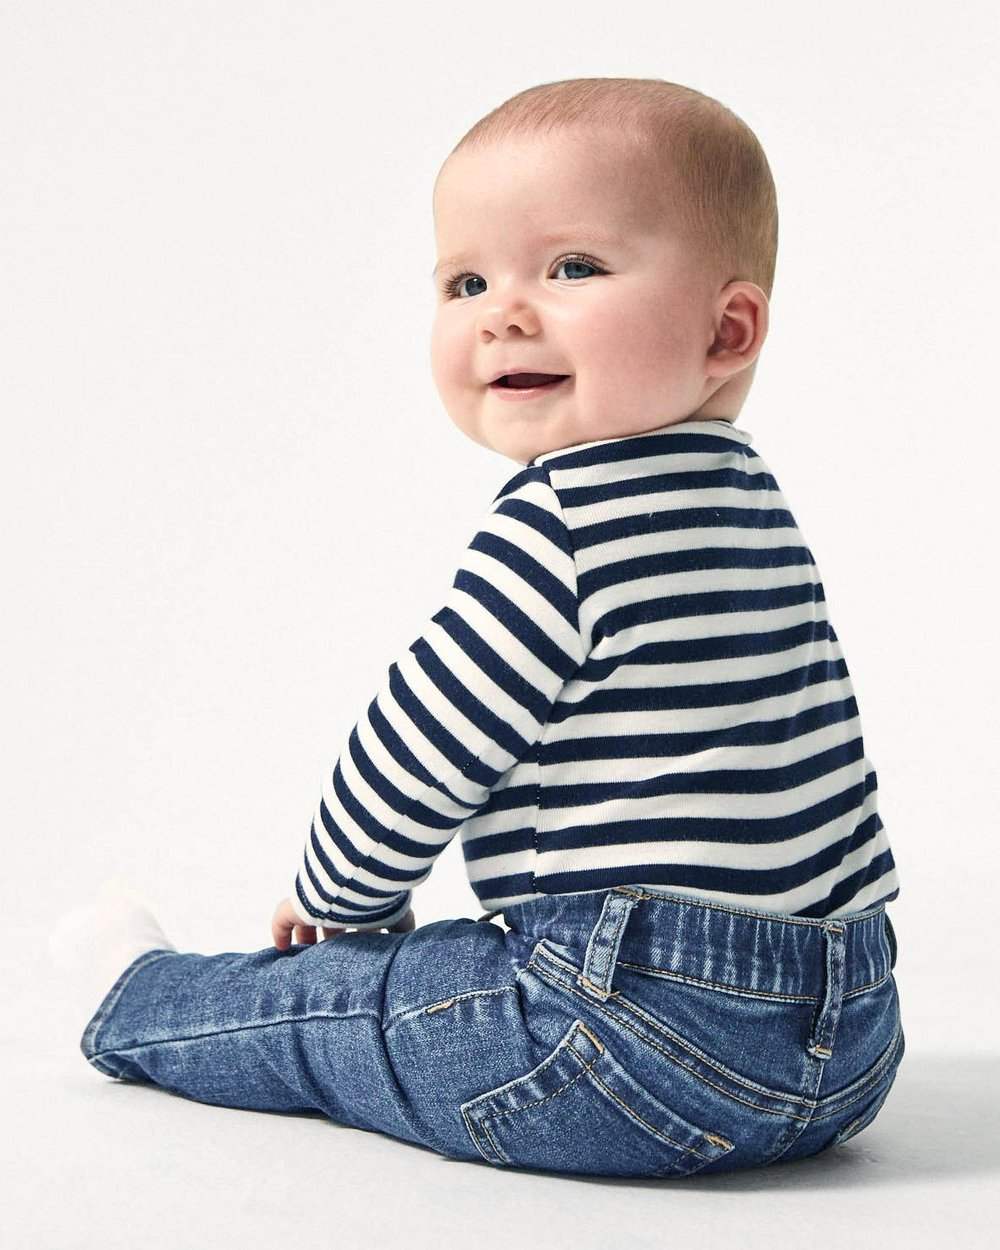 The Baby Jean